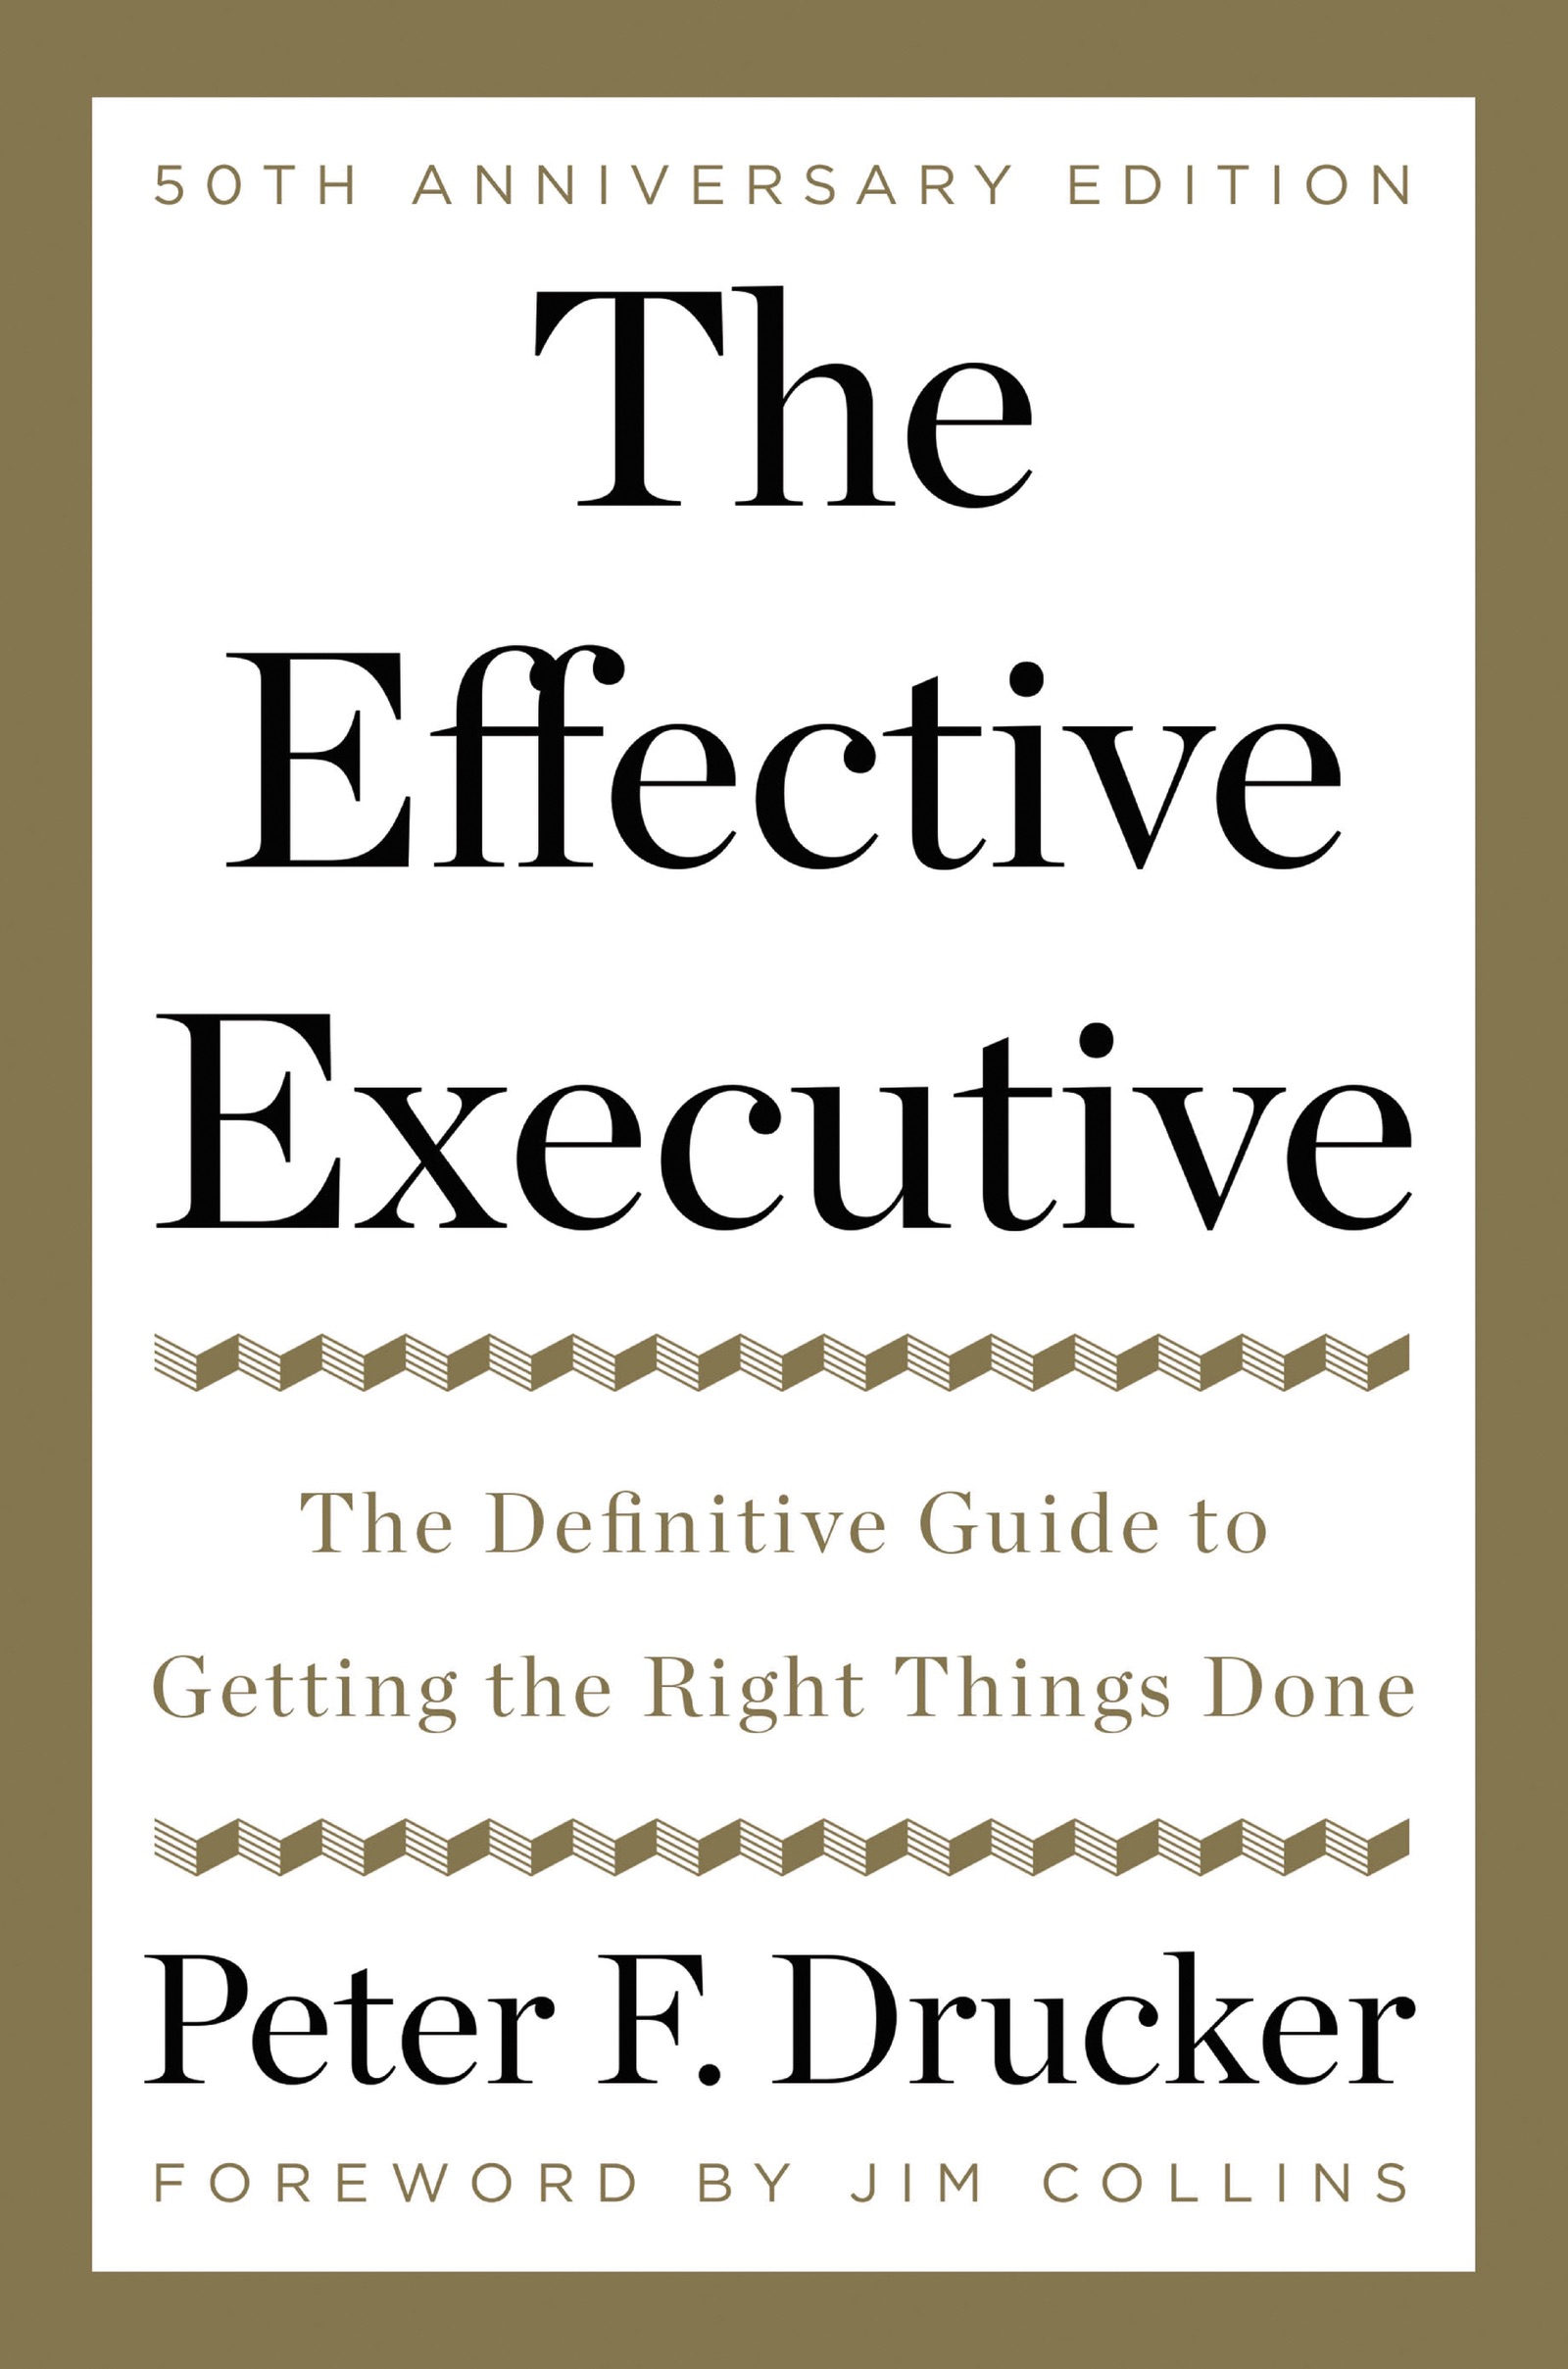 Book Cover of The Effective Executive